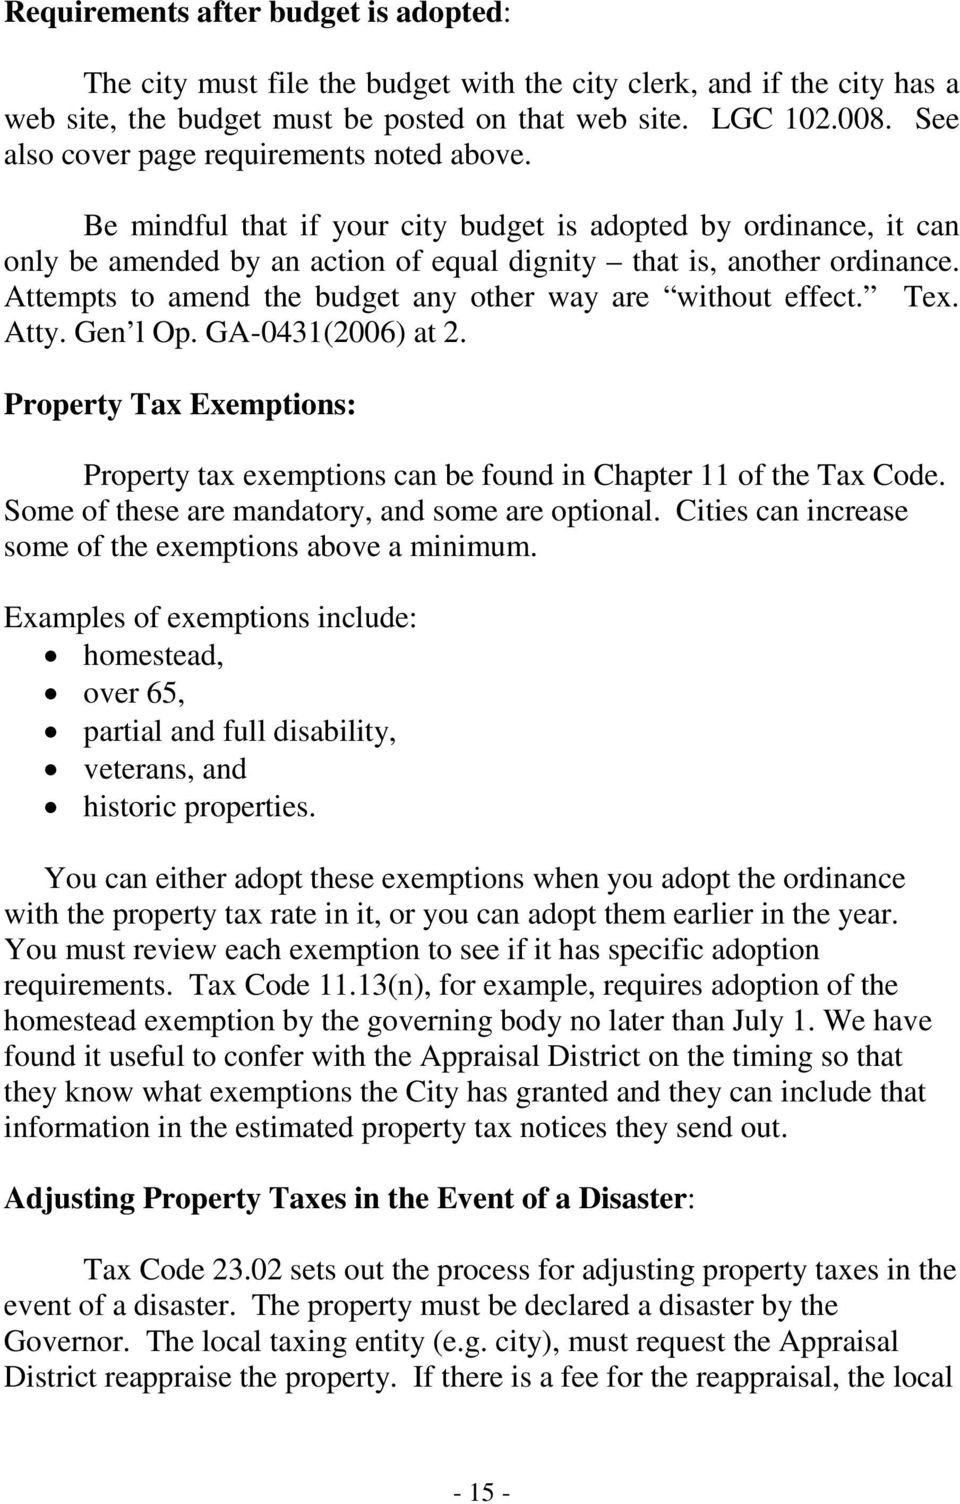 Attempts to amend the budget any other way are without effect. Tex. Atty. Gen l Op. GA-0431(2006) at 2. Property Tax Exemptions: Property tax exemptions can be found in Chapter 11 of the Tax Code.